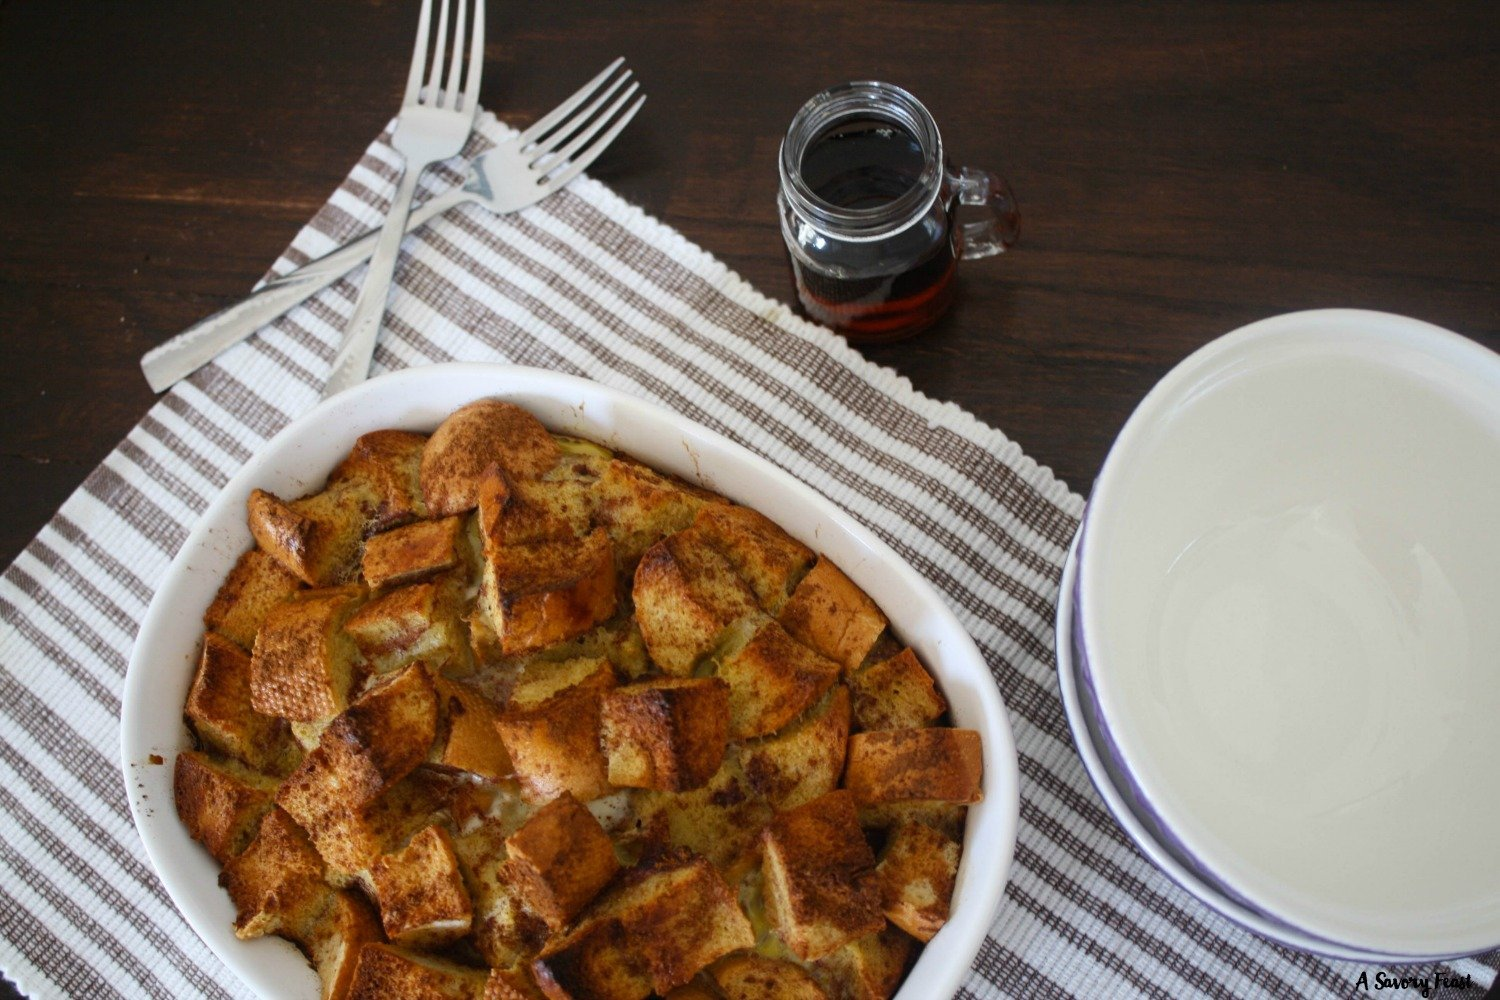 I think every weekend needs to start with a big, special breakfast like this! Cinnamon French Toast Bake is simple to assemble (no need to put it together the night before!). Sweetened only with maple syrup, it's a breakfast choice that is a little bit healthier, too.